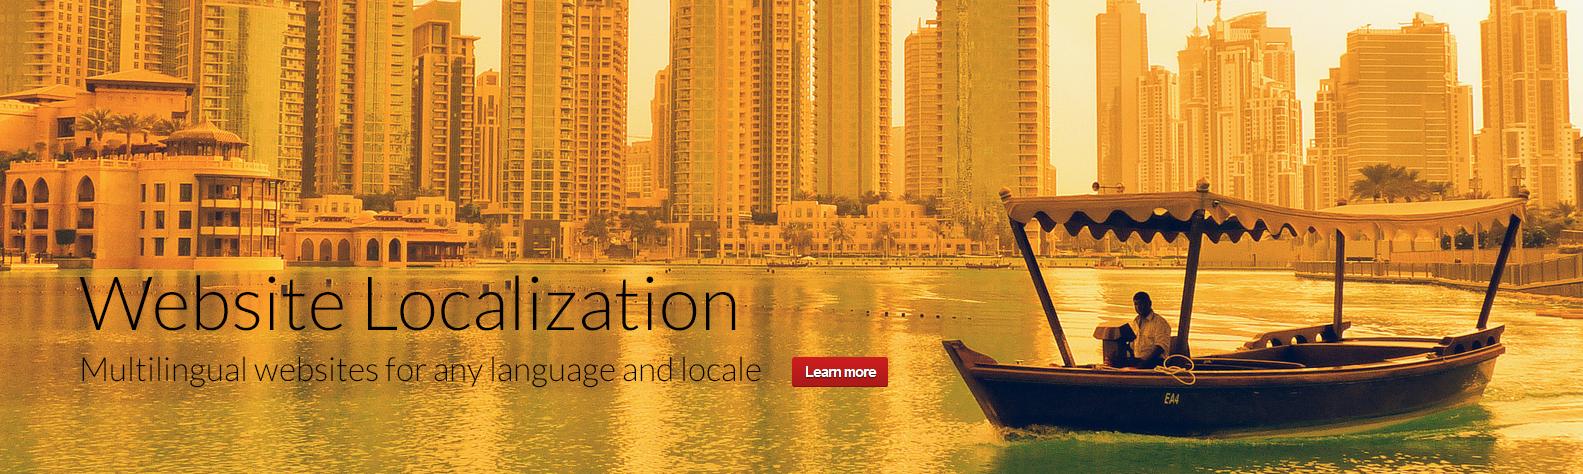 03-gpi-website-localization